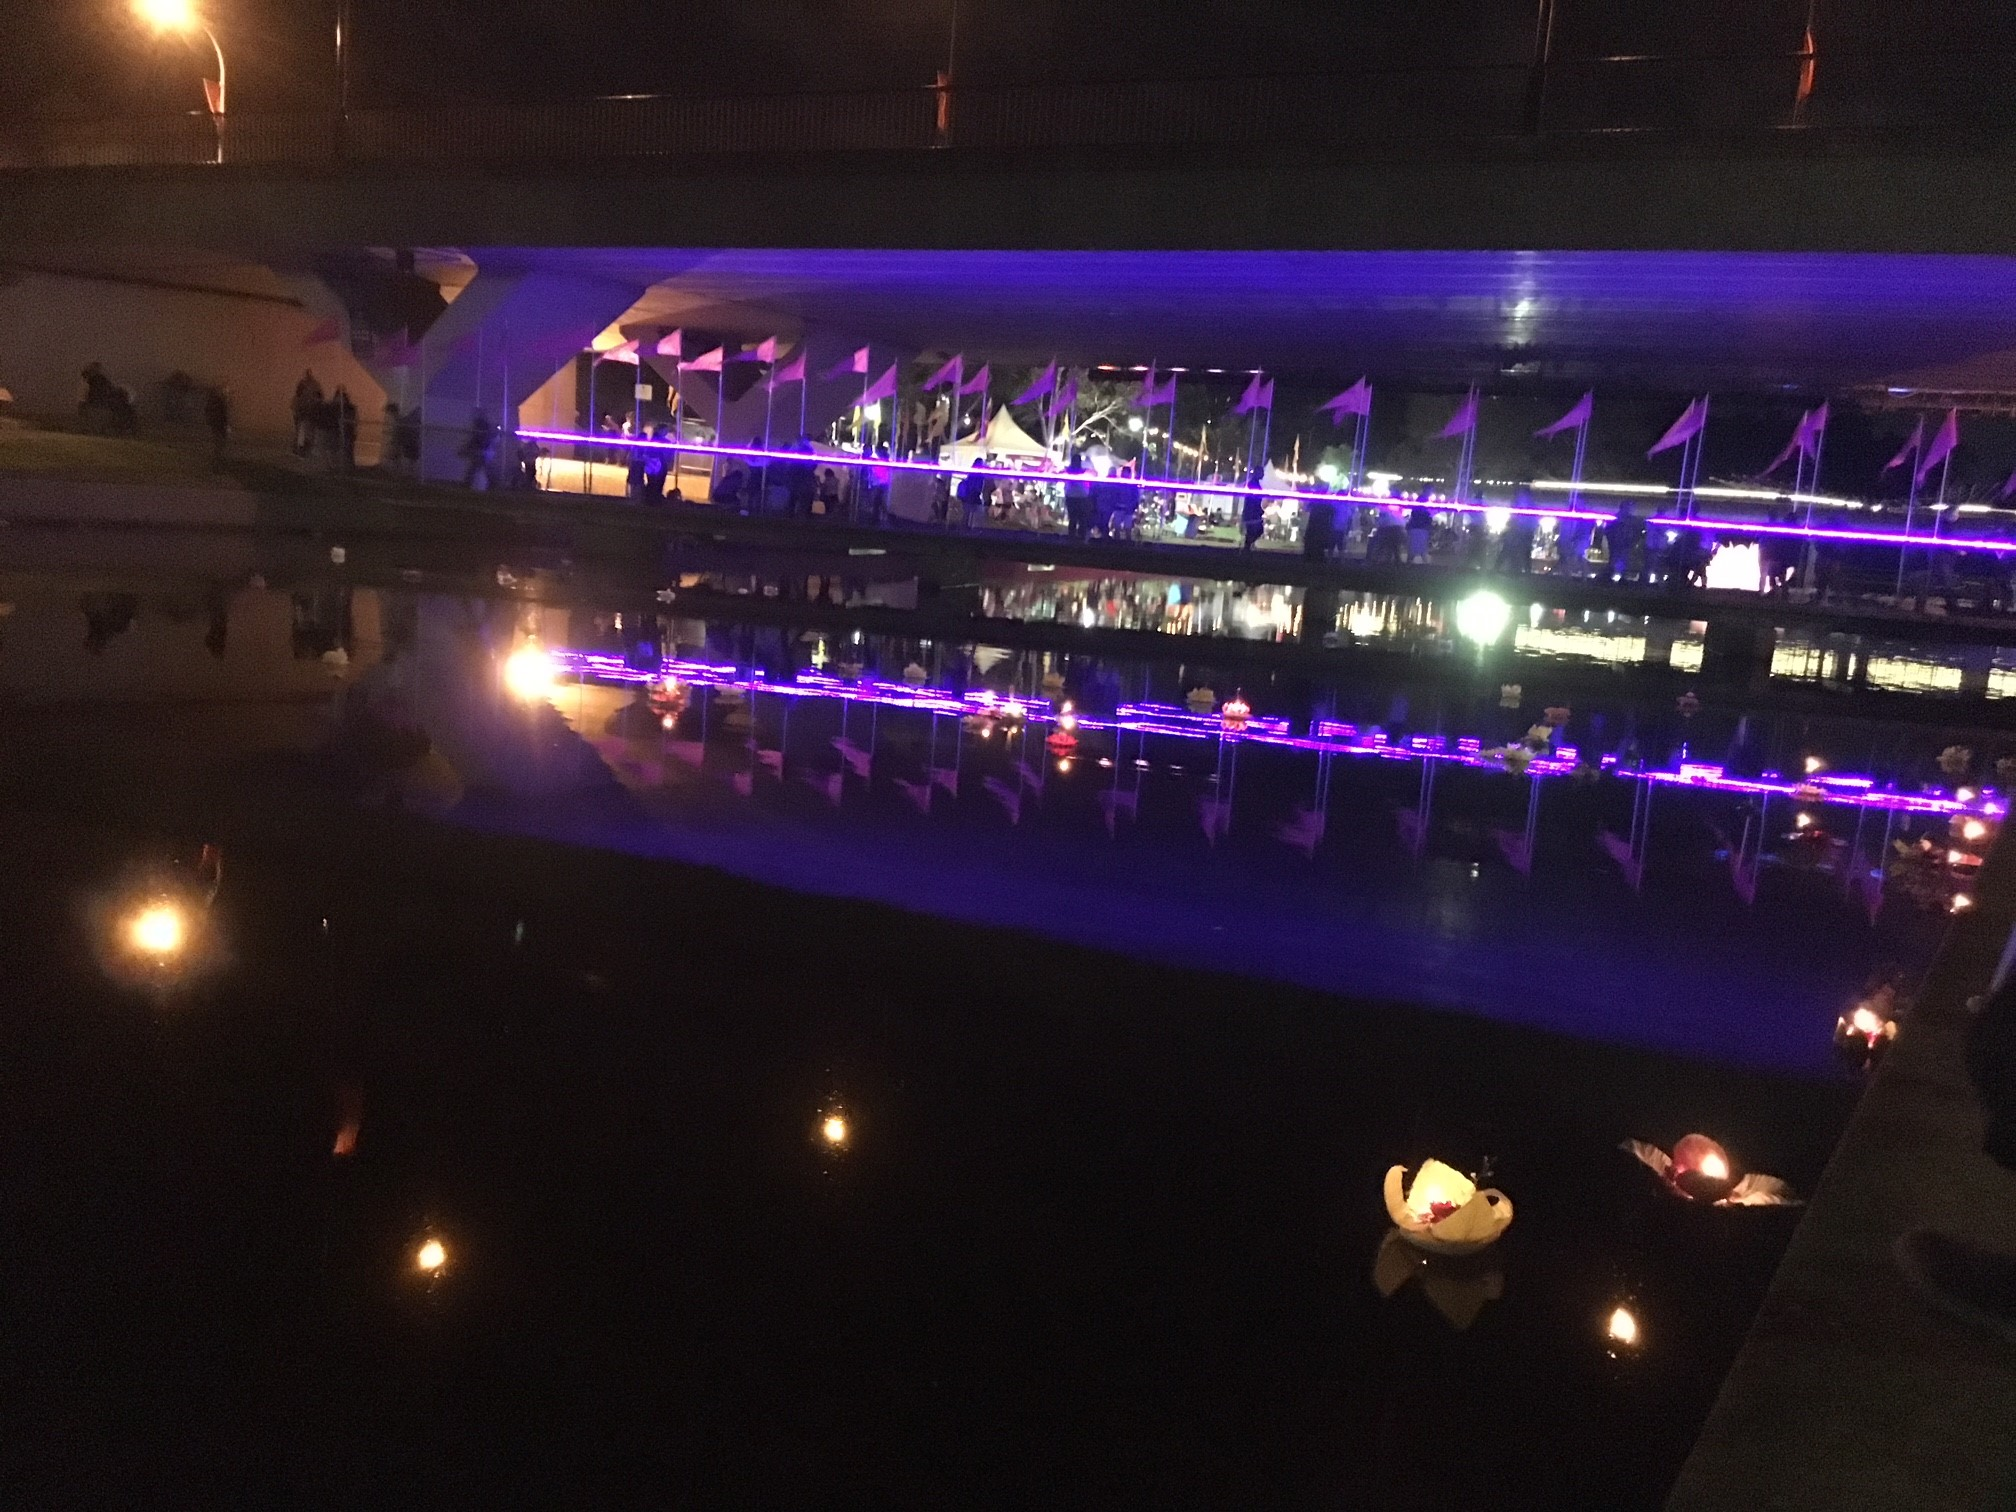 Parramatta river was dressed up by many krathong with lights.